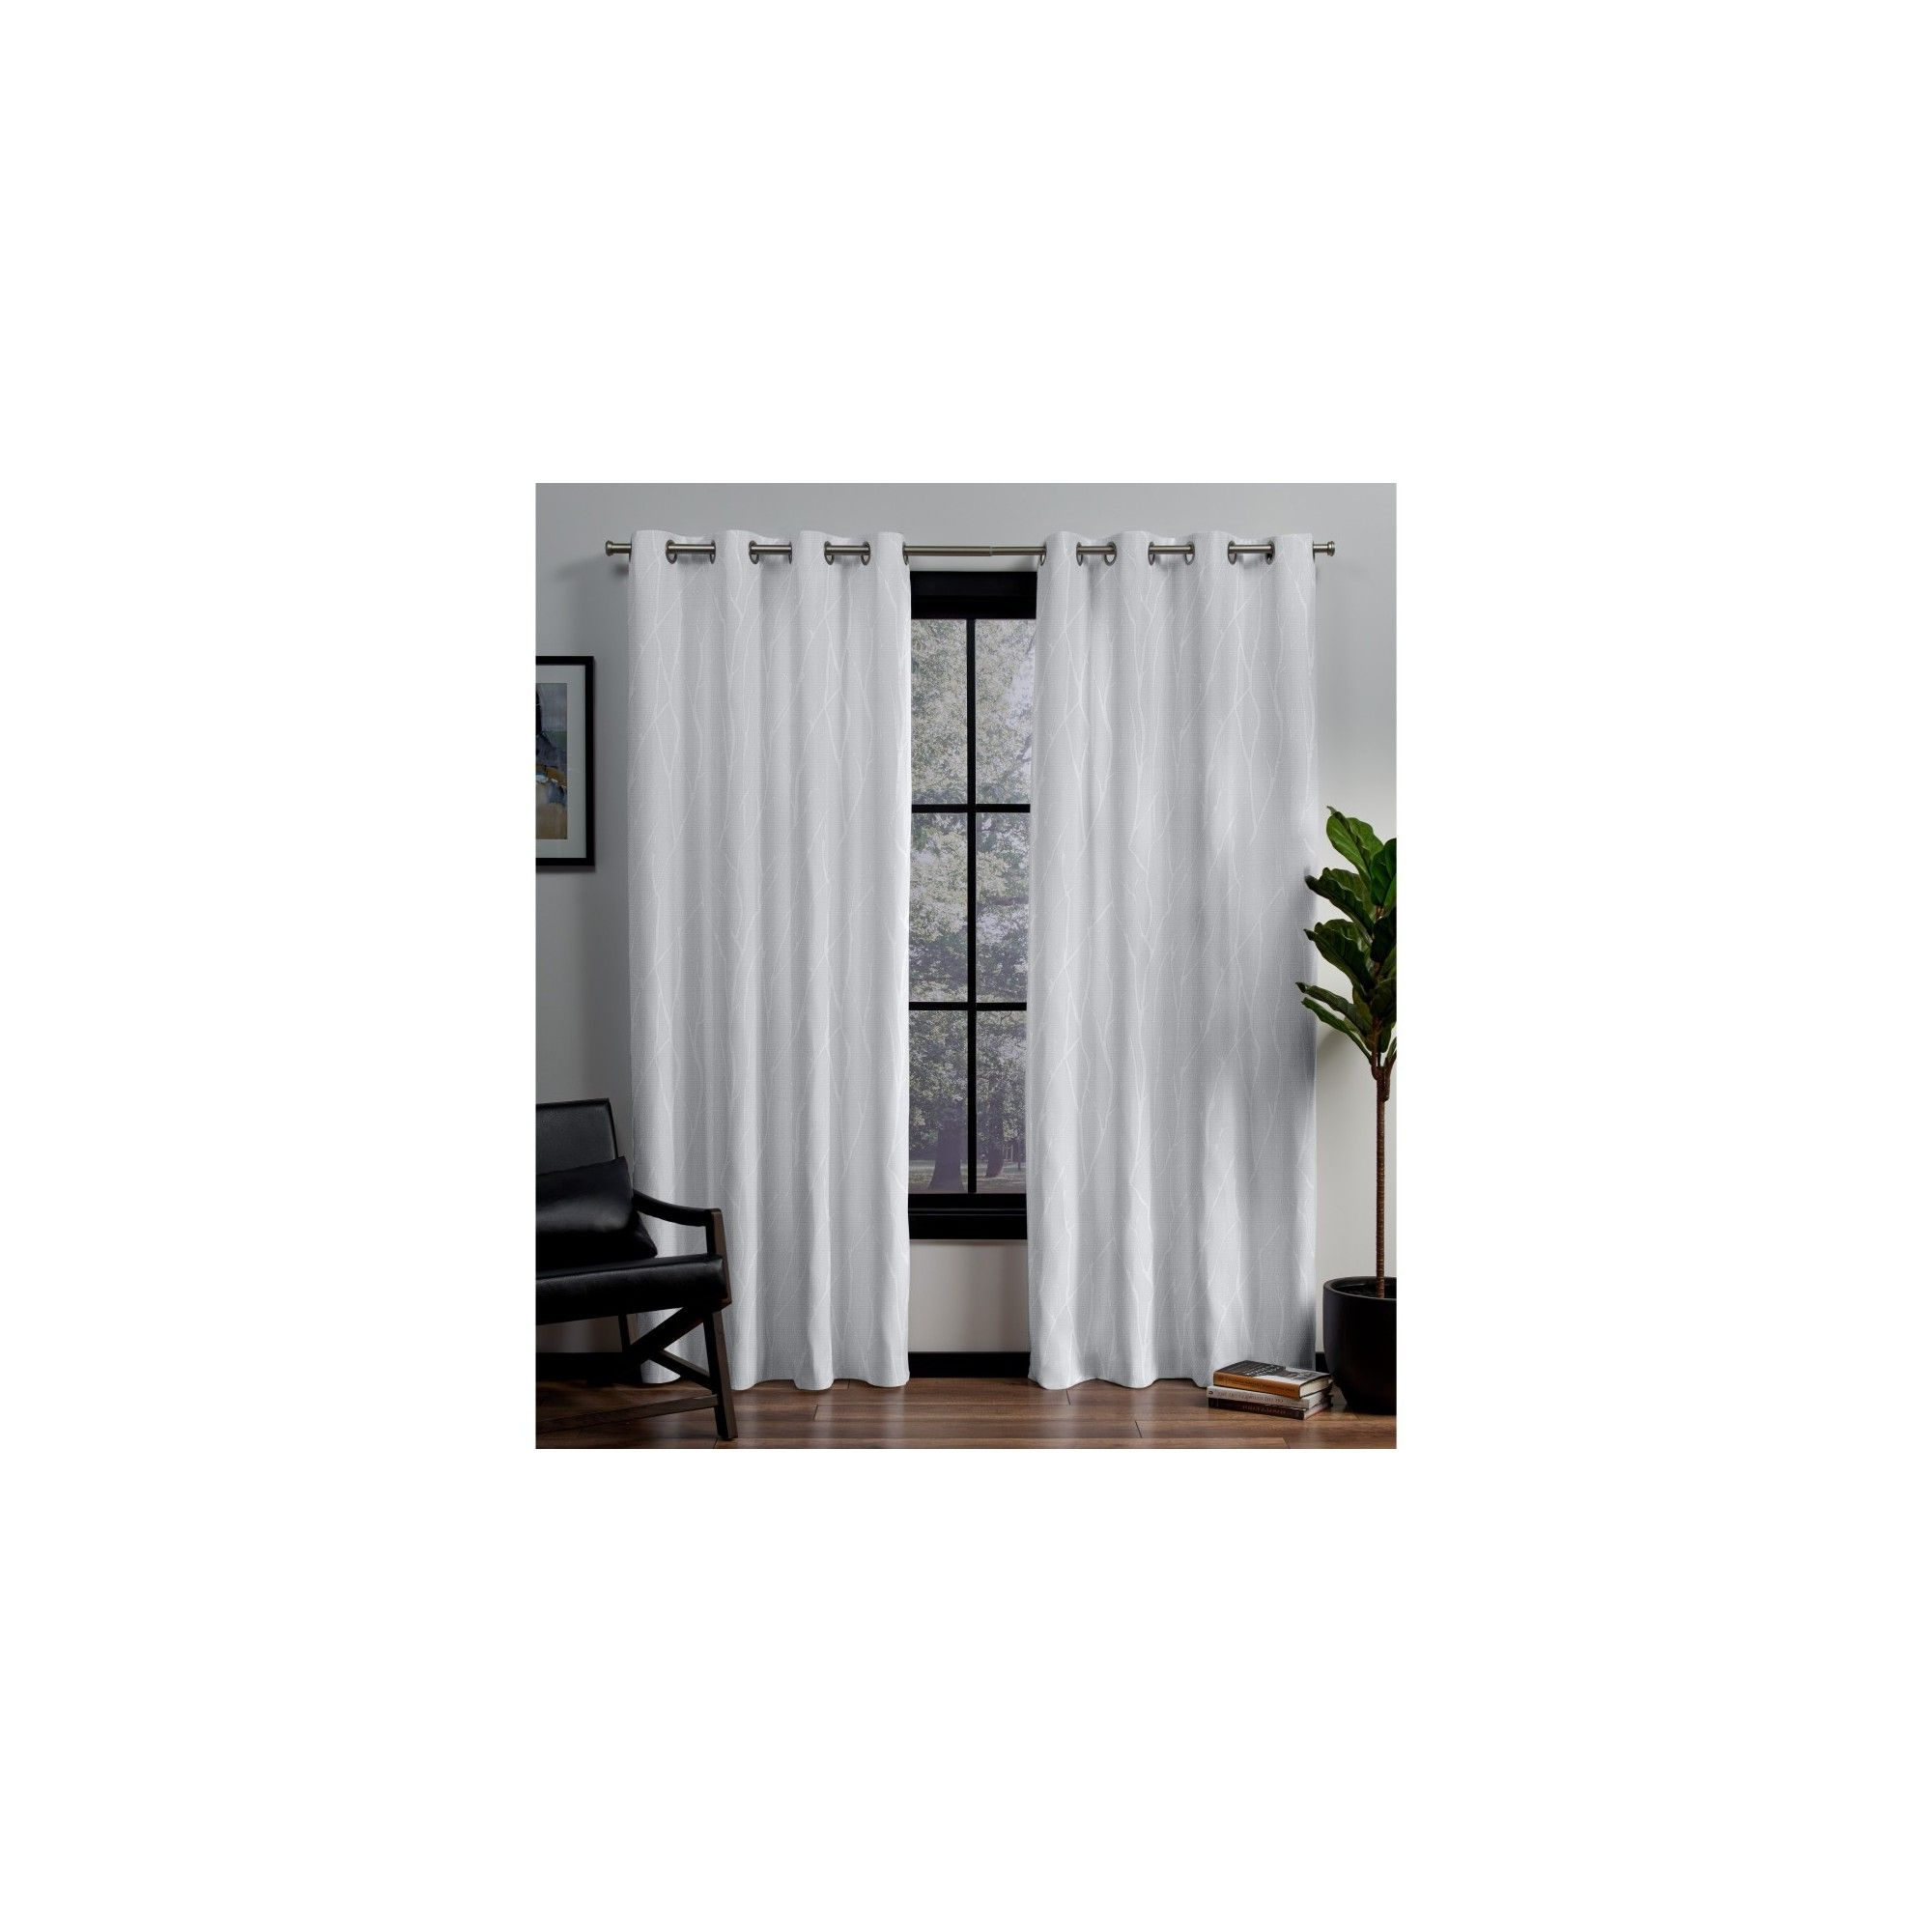 "Forest Hill Woven Blackout Grommet Top Curtain Panel Pairs For Most Current 52""x84"" Forest Hill Woven Blackout Grommet Top Window (View 5 of 20)"